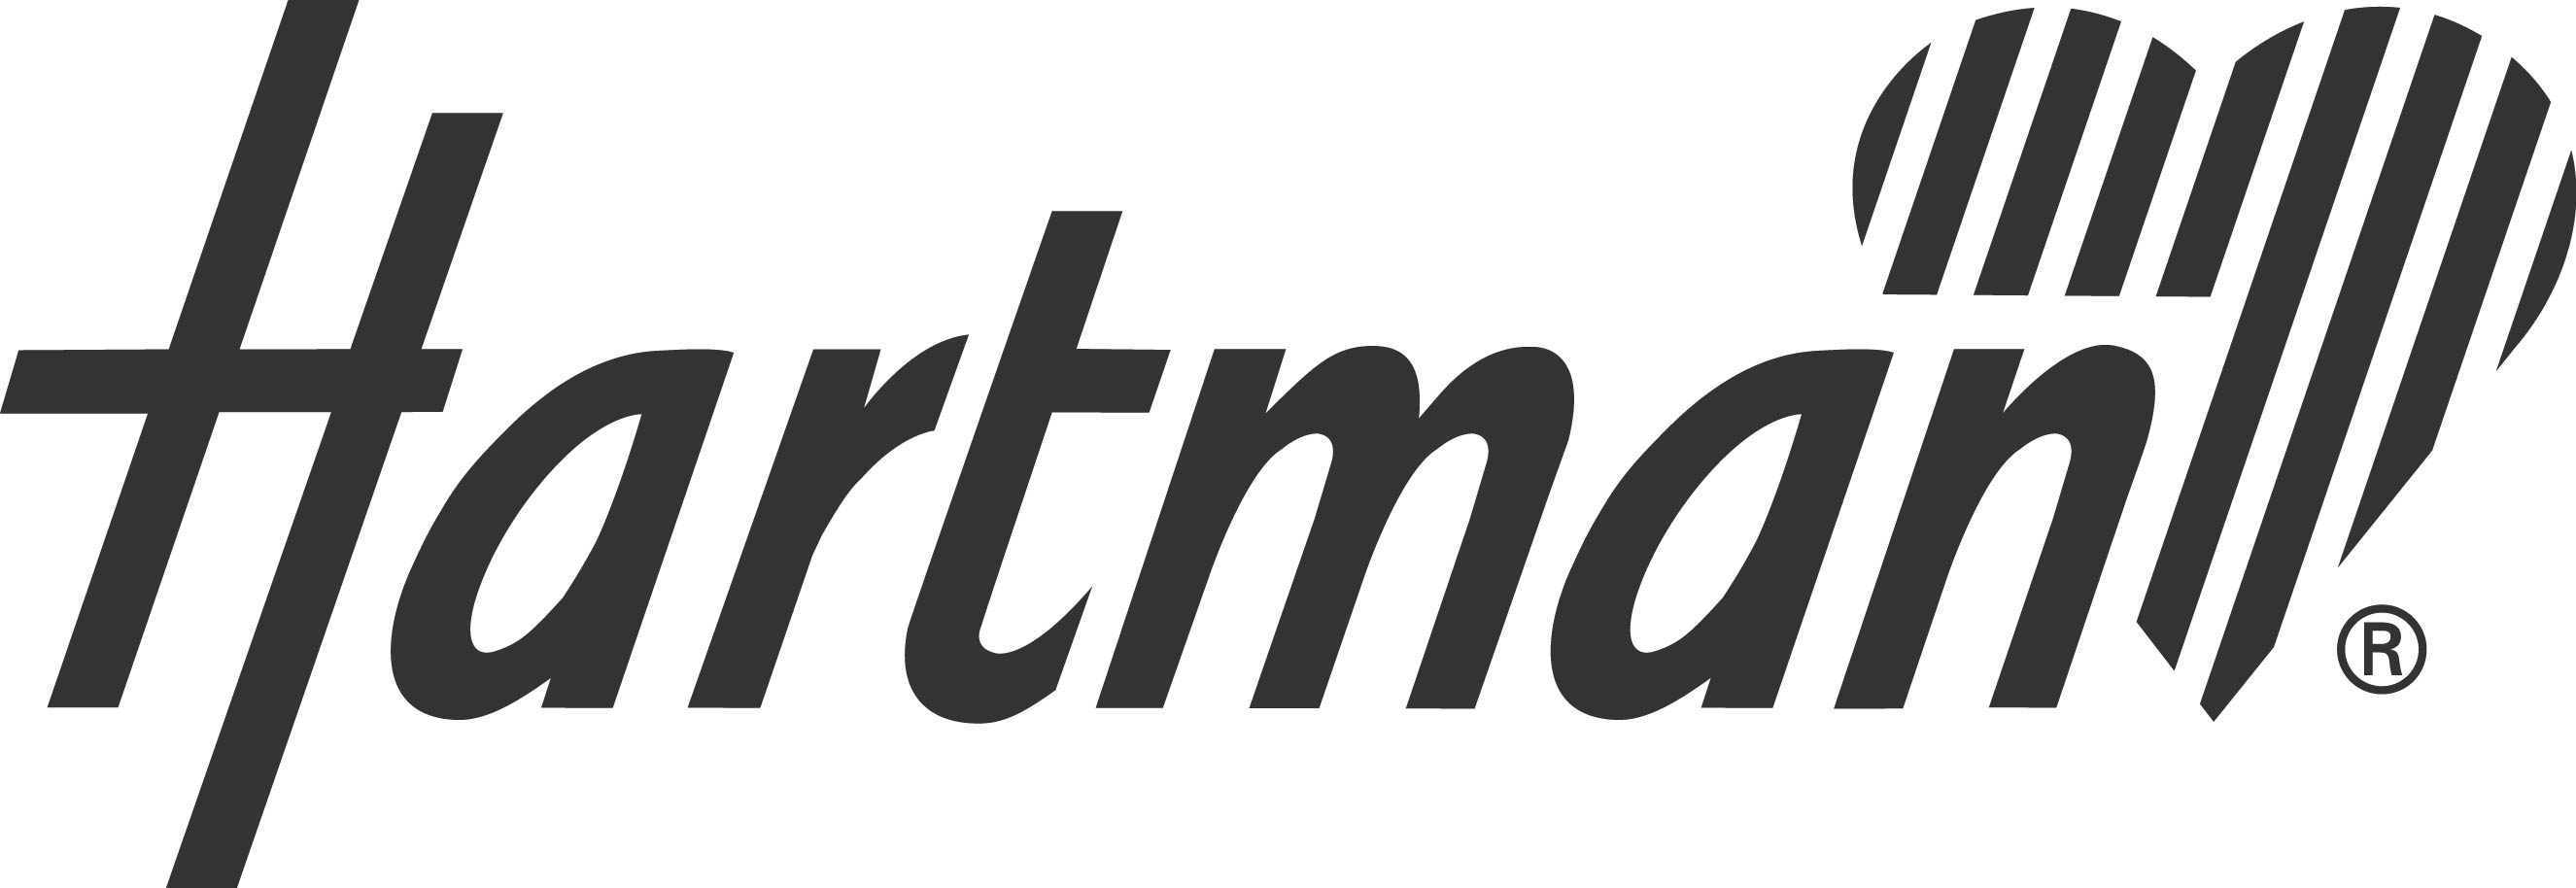 Hartman Outdoor Products Germany GmbH